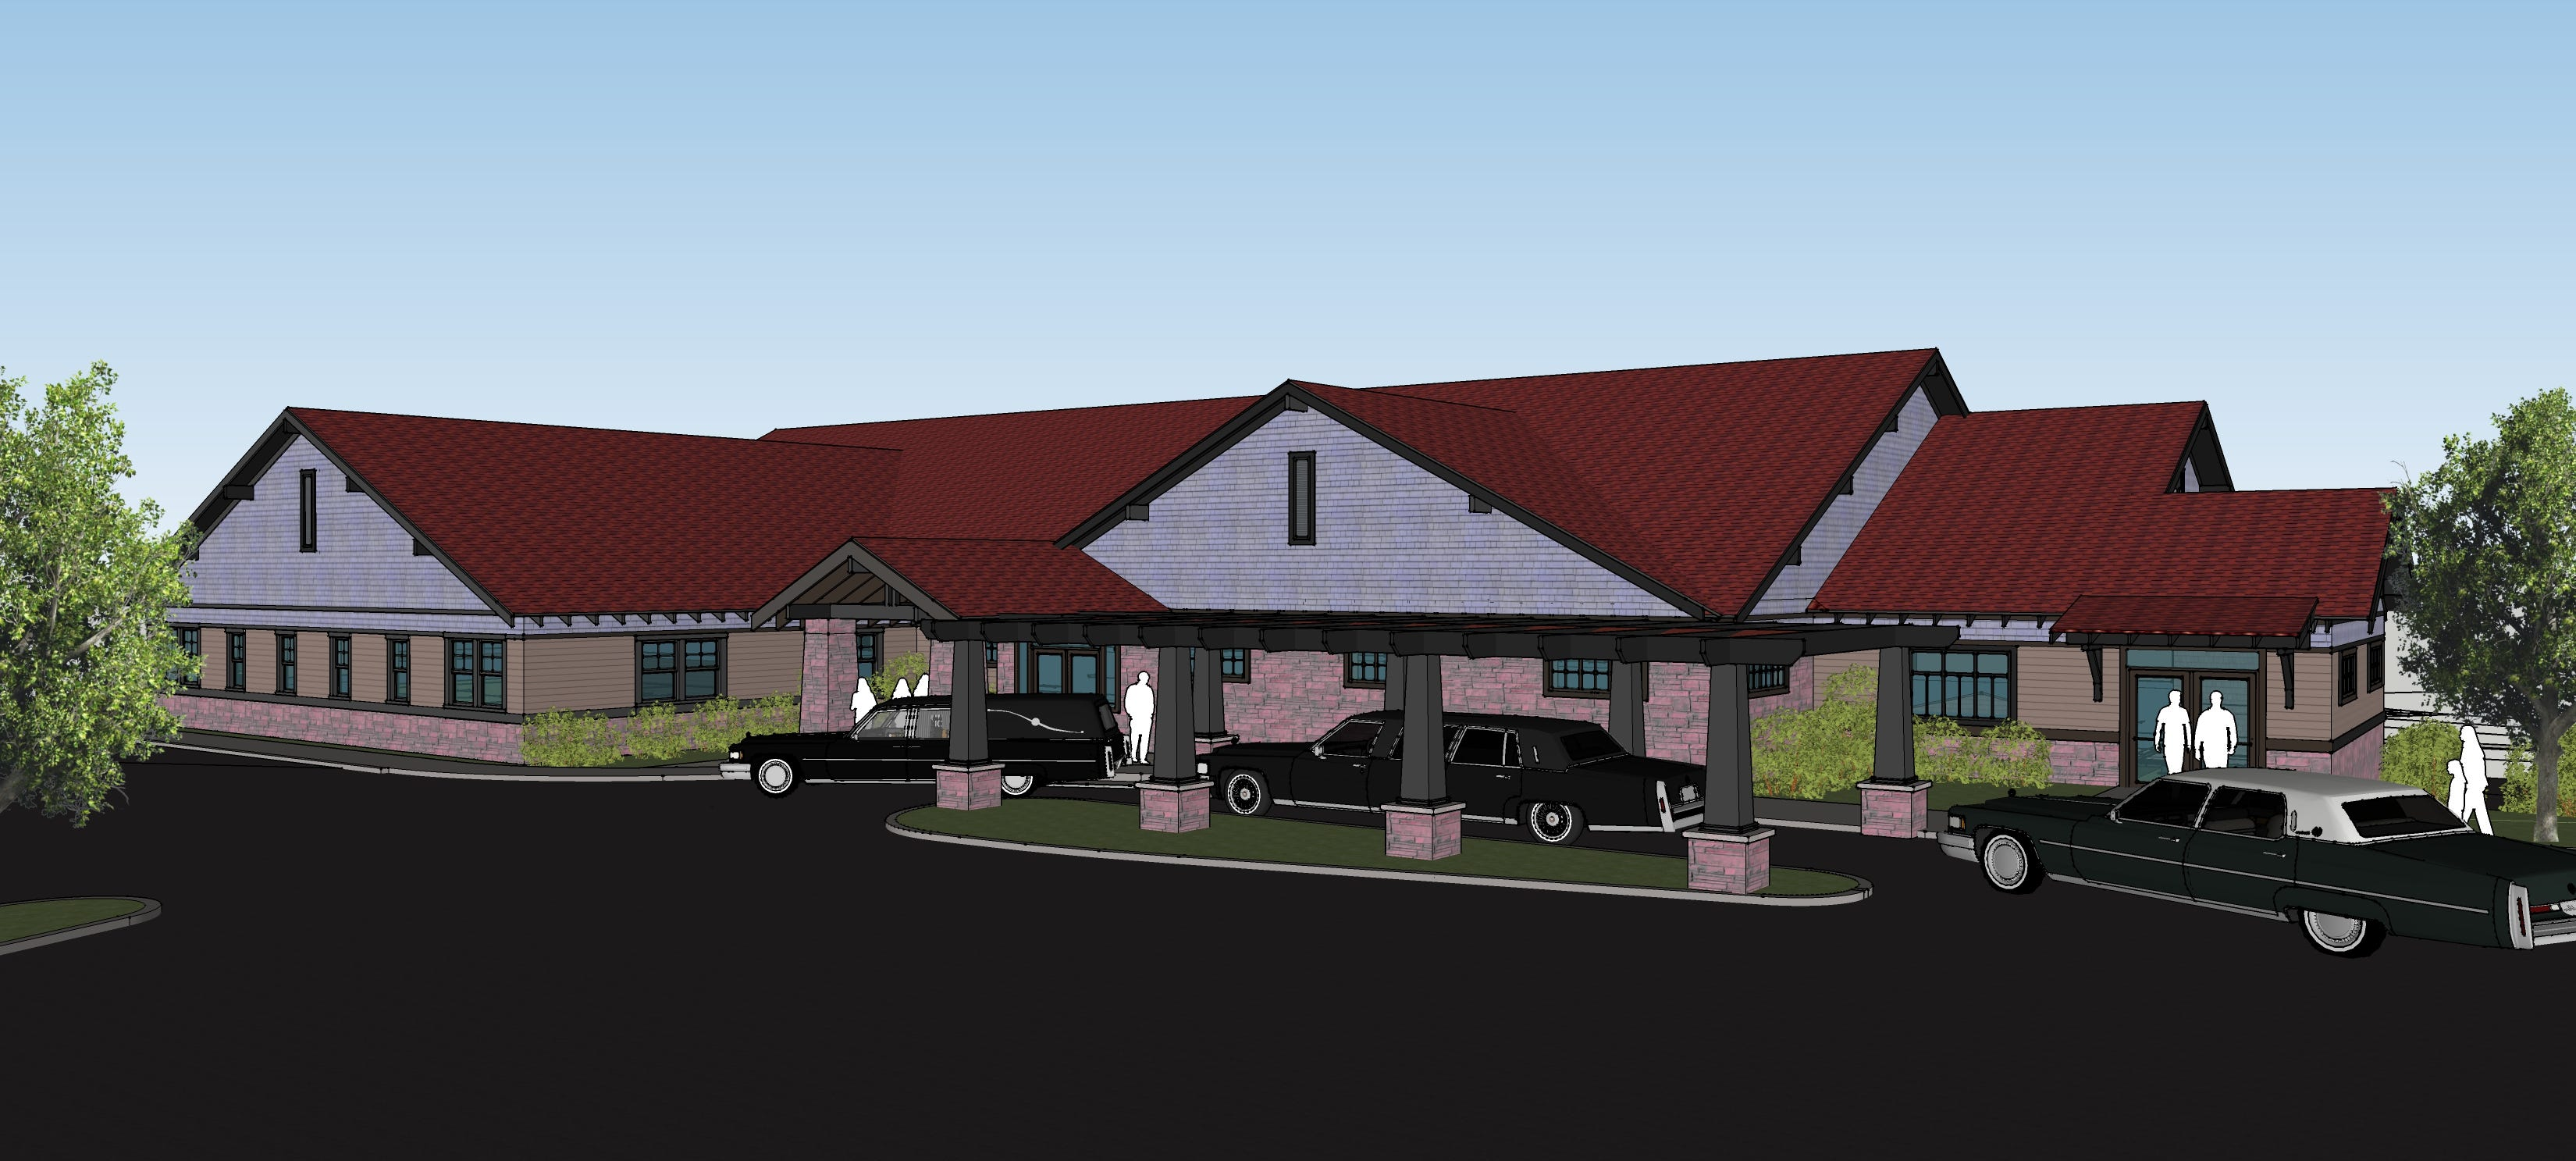 A Design Of The New George Boom Funeral Home On East